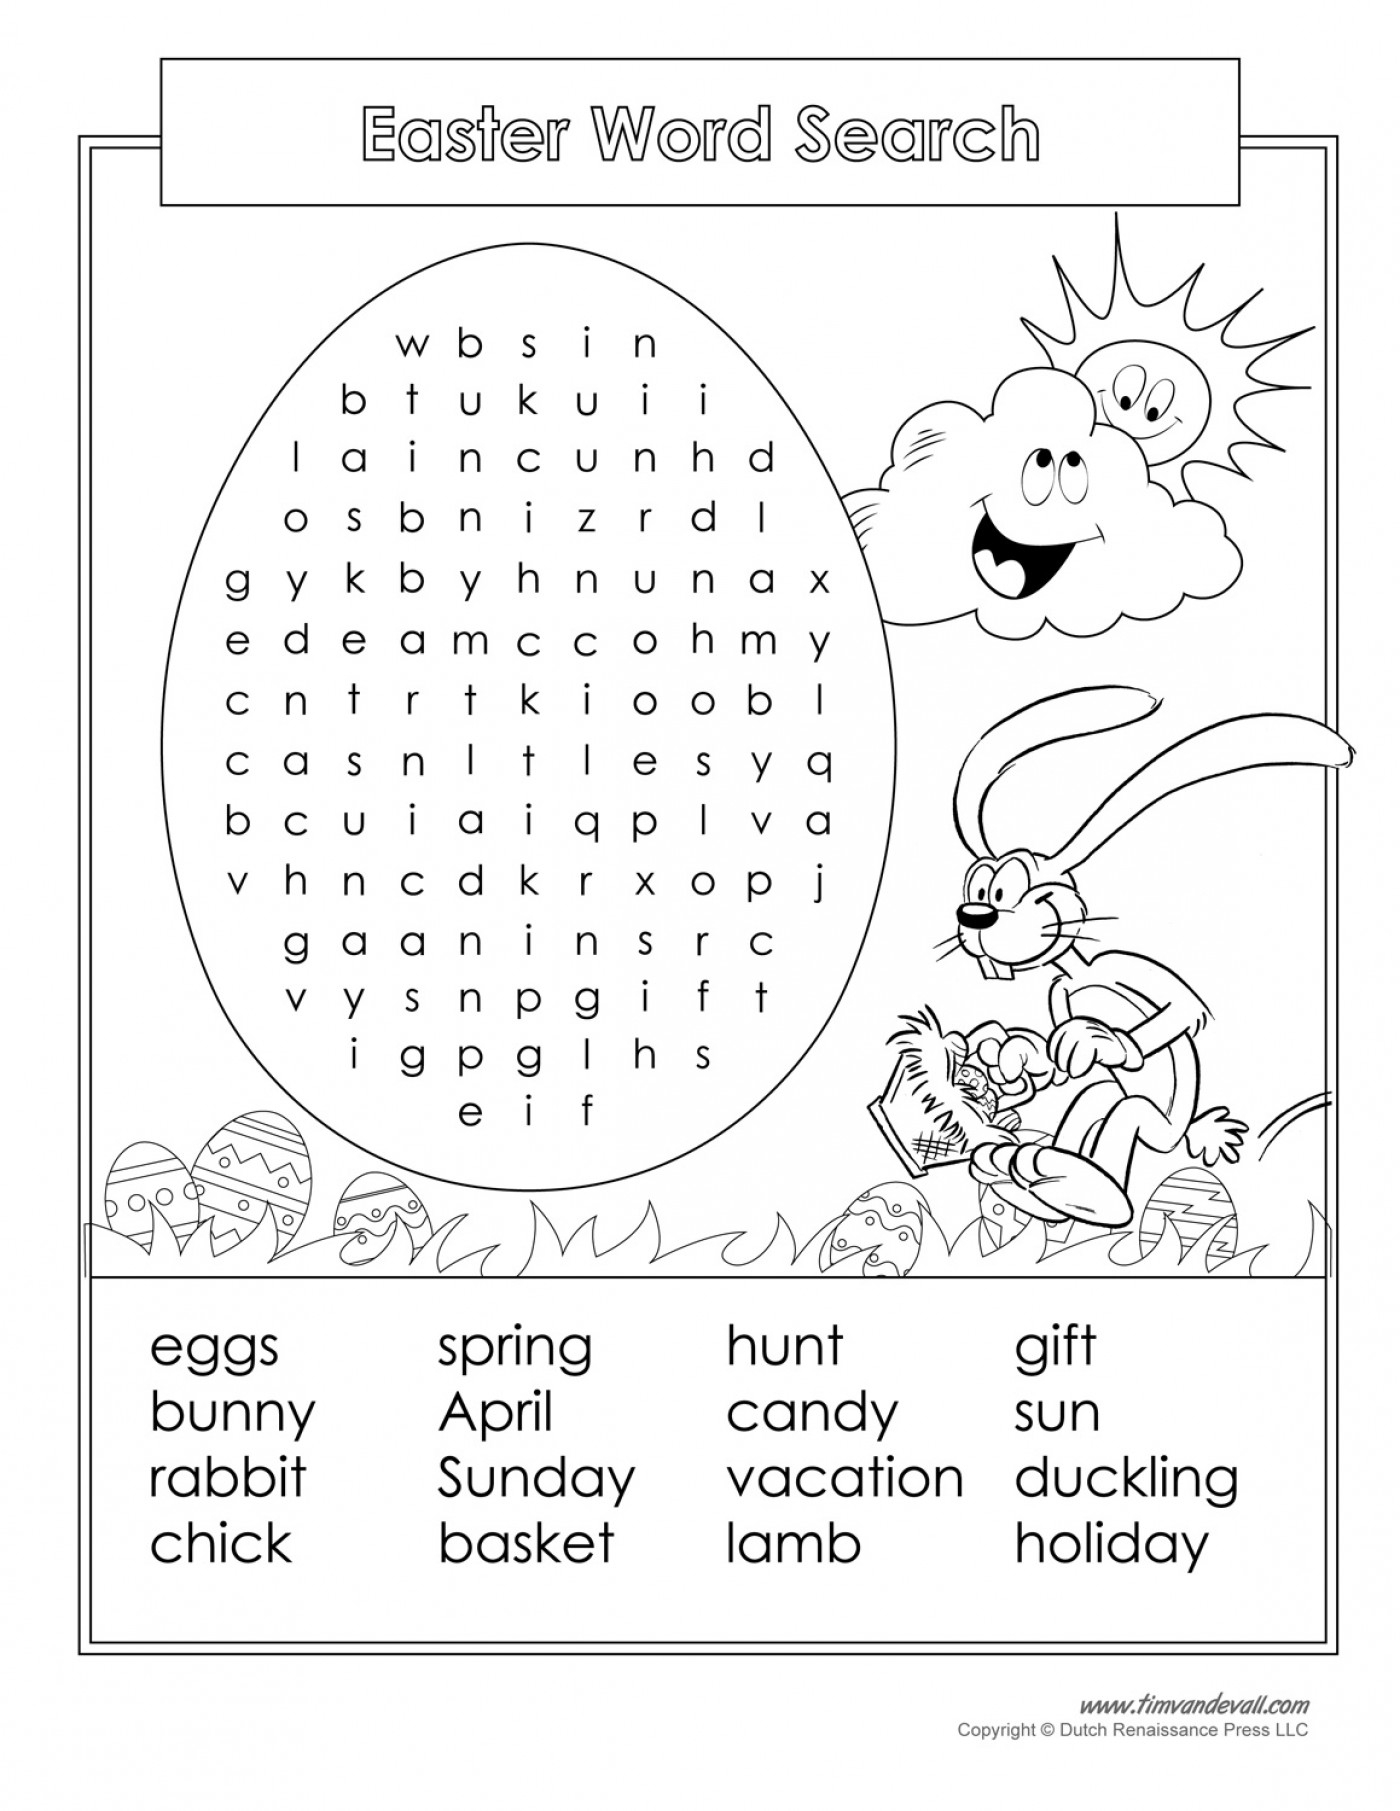 Easter Crossword Puzzle Printable Crosswords Free Word - Free Printable Easter Puzzles For Adults